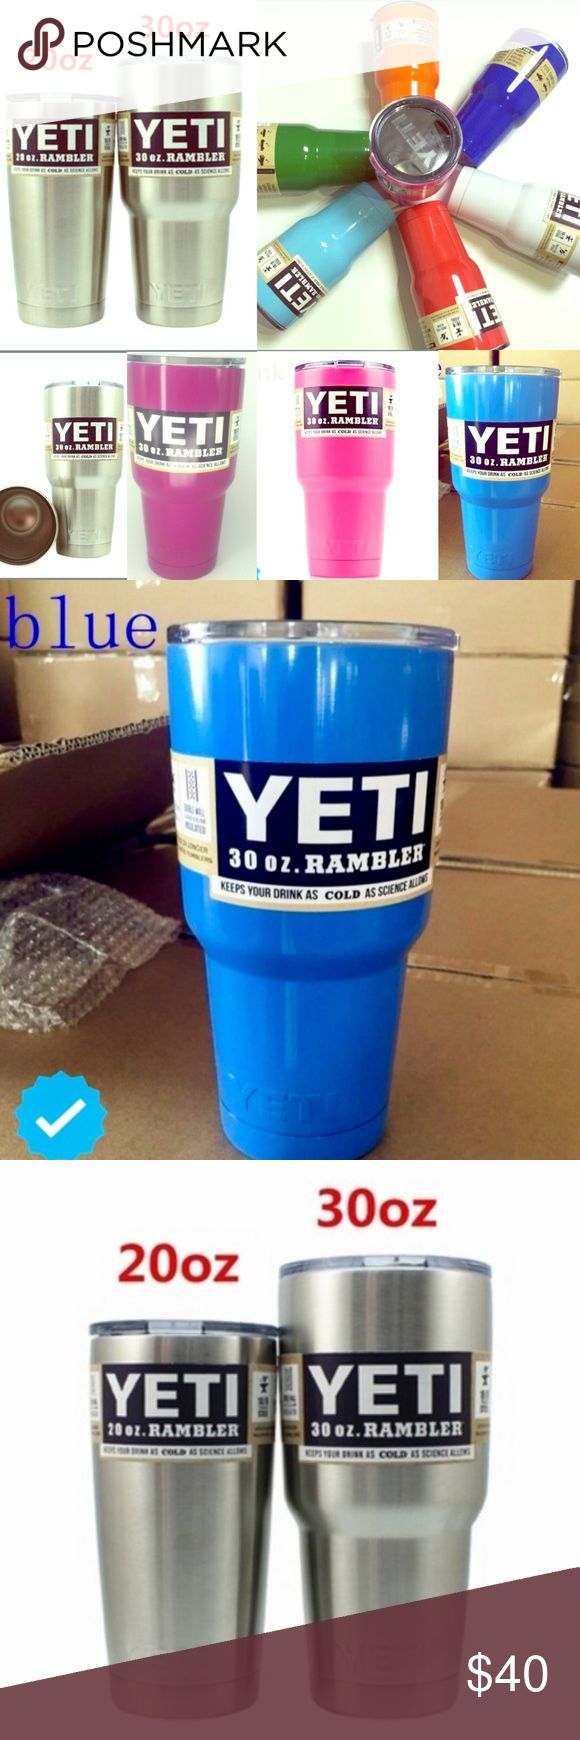 REAL Yeti Ramblers- 20 OZ or 30 OZMULTI COLORS CHOOSE ANY OF THE AWESOME BRAND NEW YETI RAMBLER CUPS ABOVE6 BEAUTIFUL COLORS TO CHOOSE FROMORDERS INCLUDE SUPER CUTE FREE GIFTS FROM TARGETWAREHOUSE SHIPPING TAKES AT LEAST 2 WEEKS SO IF ANYONES INTERESTED LET ME KNOW AHEAD OF TIME TO ALLOW DELIVERYORDERS WILL SHIP SAME DAY ONCE THEY ARRIVEBUNDLE FOR DISCOUNTS: 3 GET 15% OFF, 2 GET 10% OFF!GREAT DEAL, THESE COST $60+ DOLLARS NOW IN RETAIL STORES, HERE ONLY $40!!COME CHECK OUT MY CLOSET NOW AND…